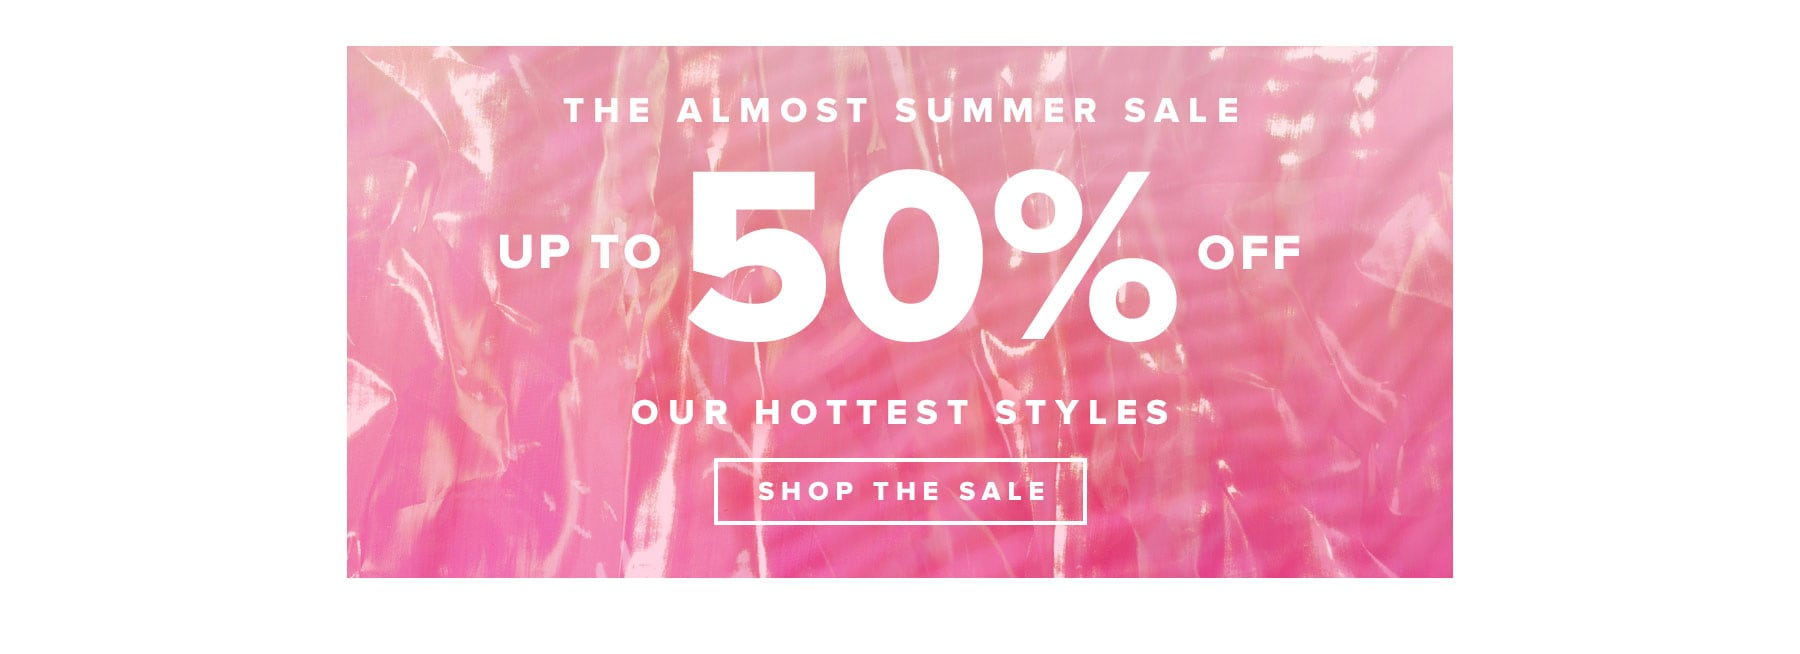 The almost summer sale. Up to 50% off our hottest styles